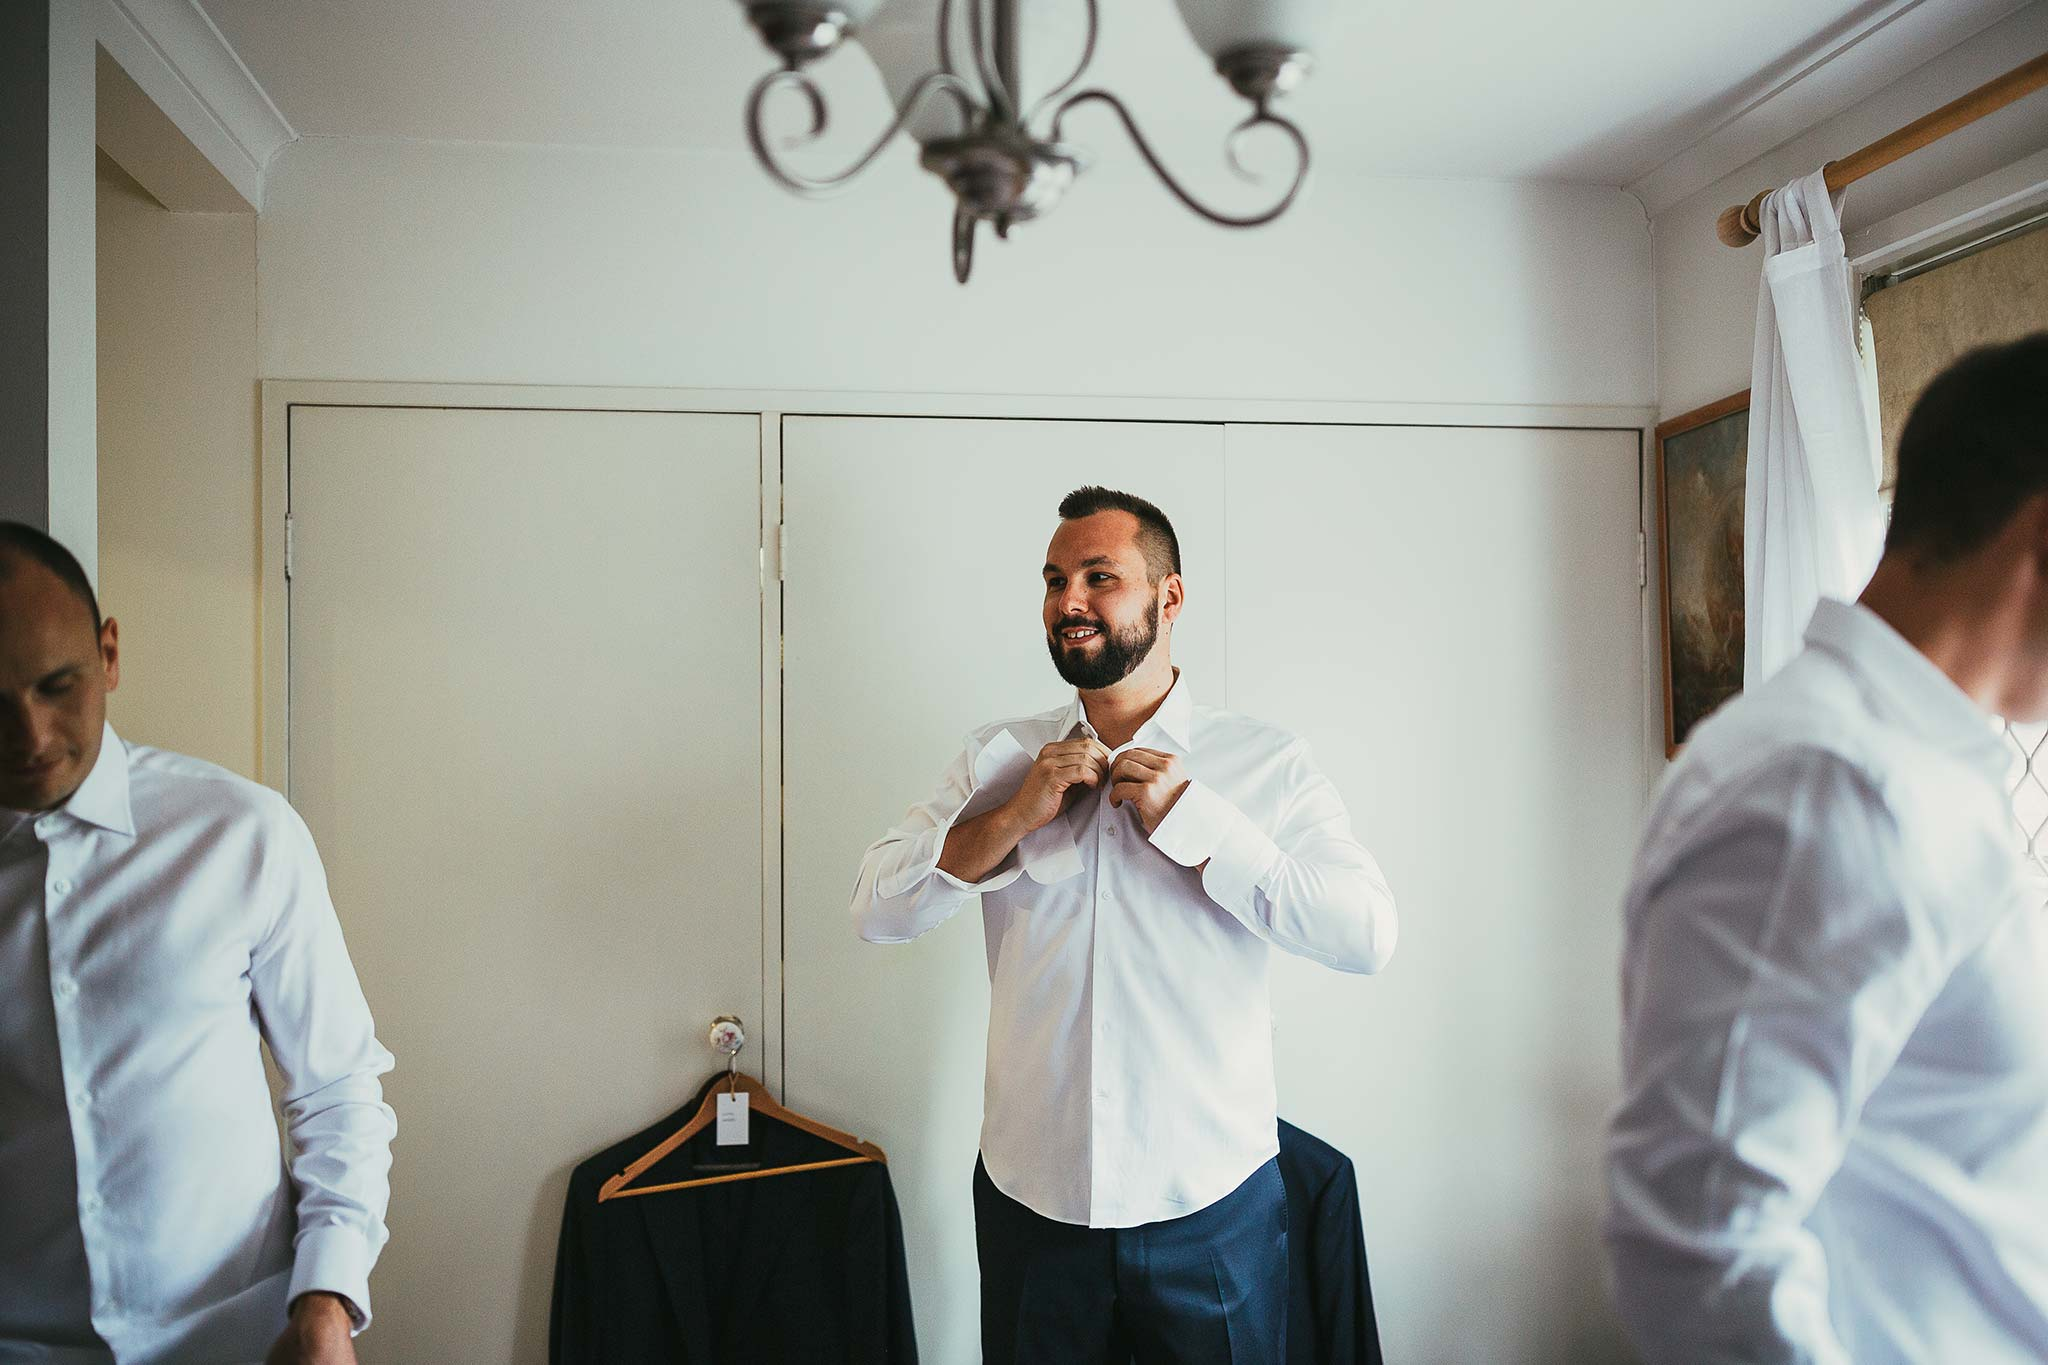 quat-quatta-night-wedding-groom-getting-ready